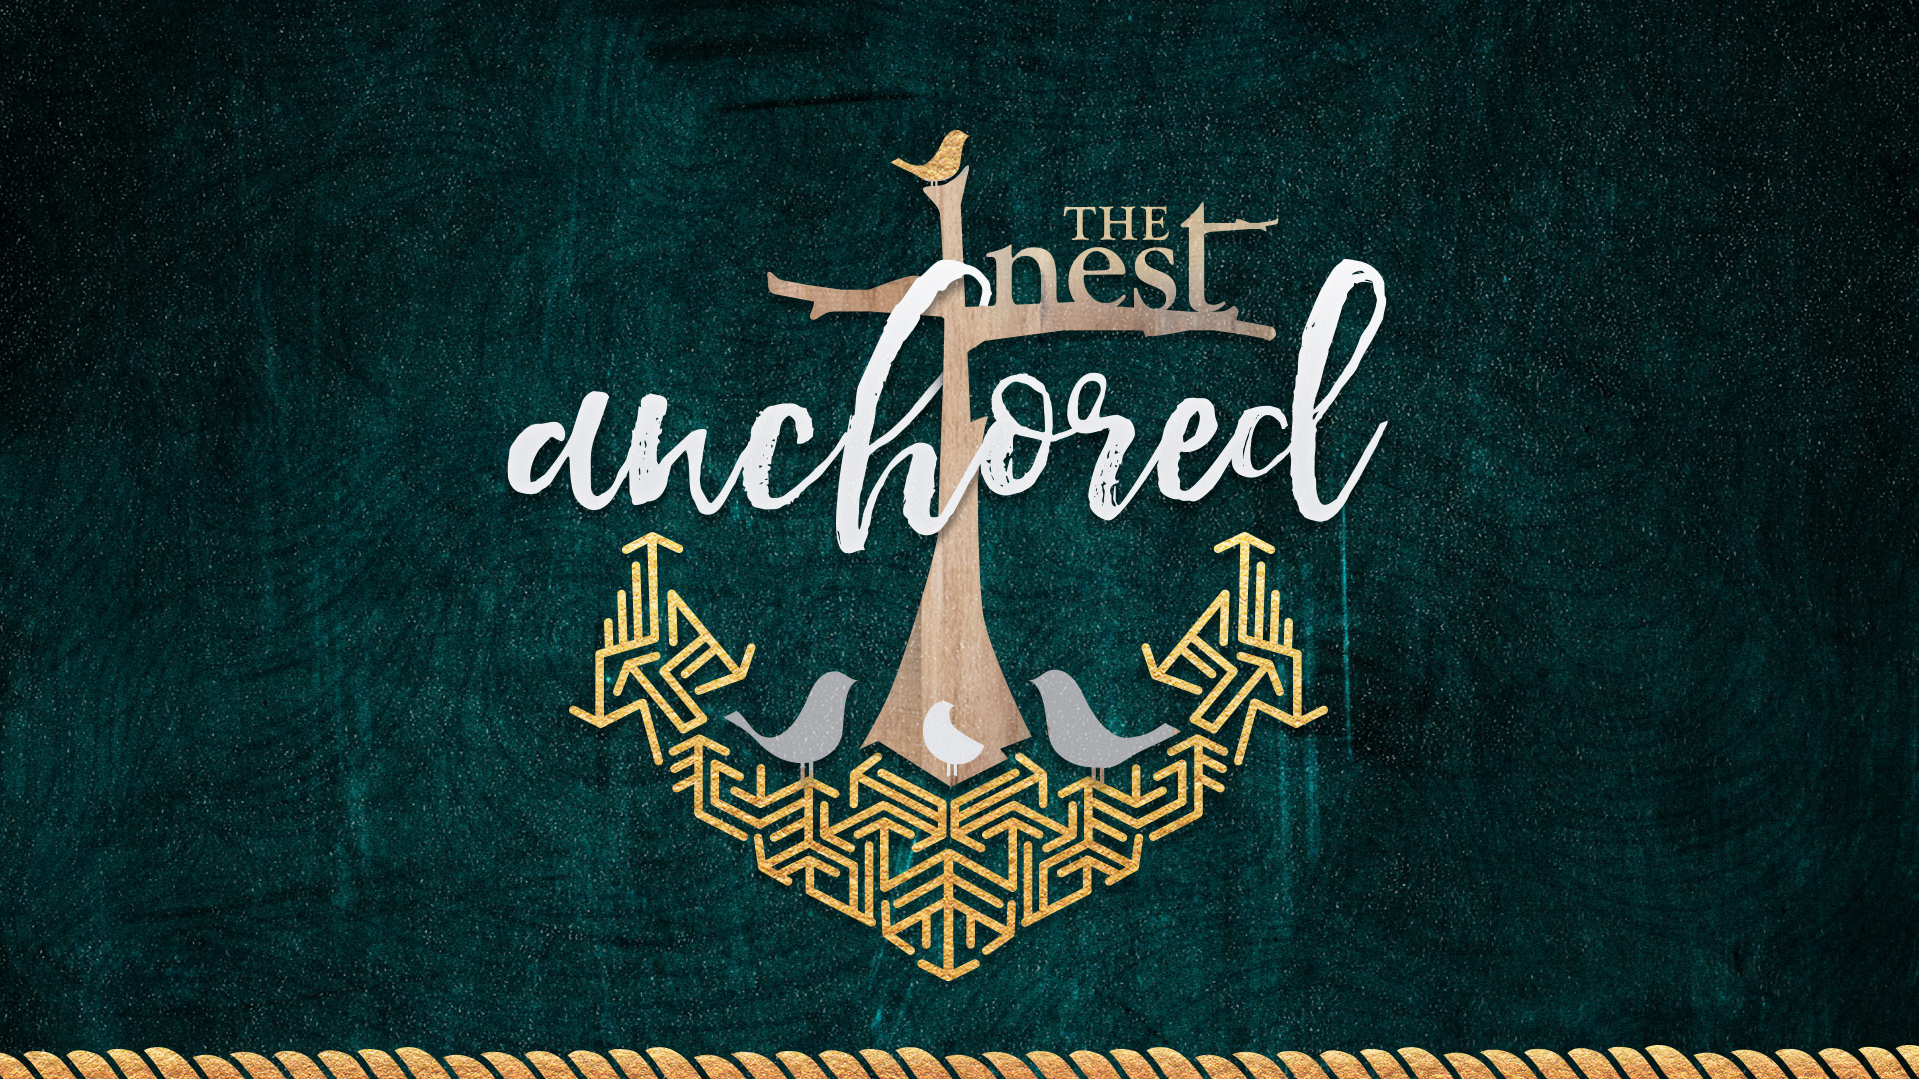 Anchored in Strength